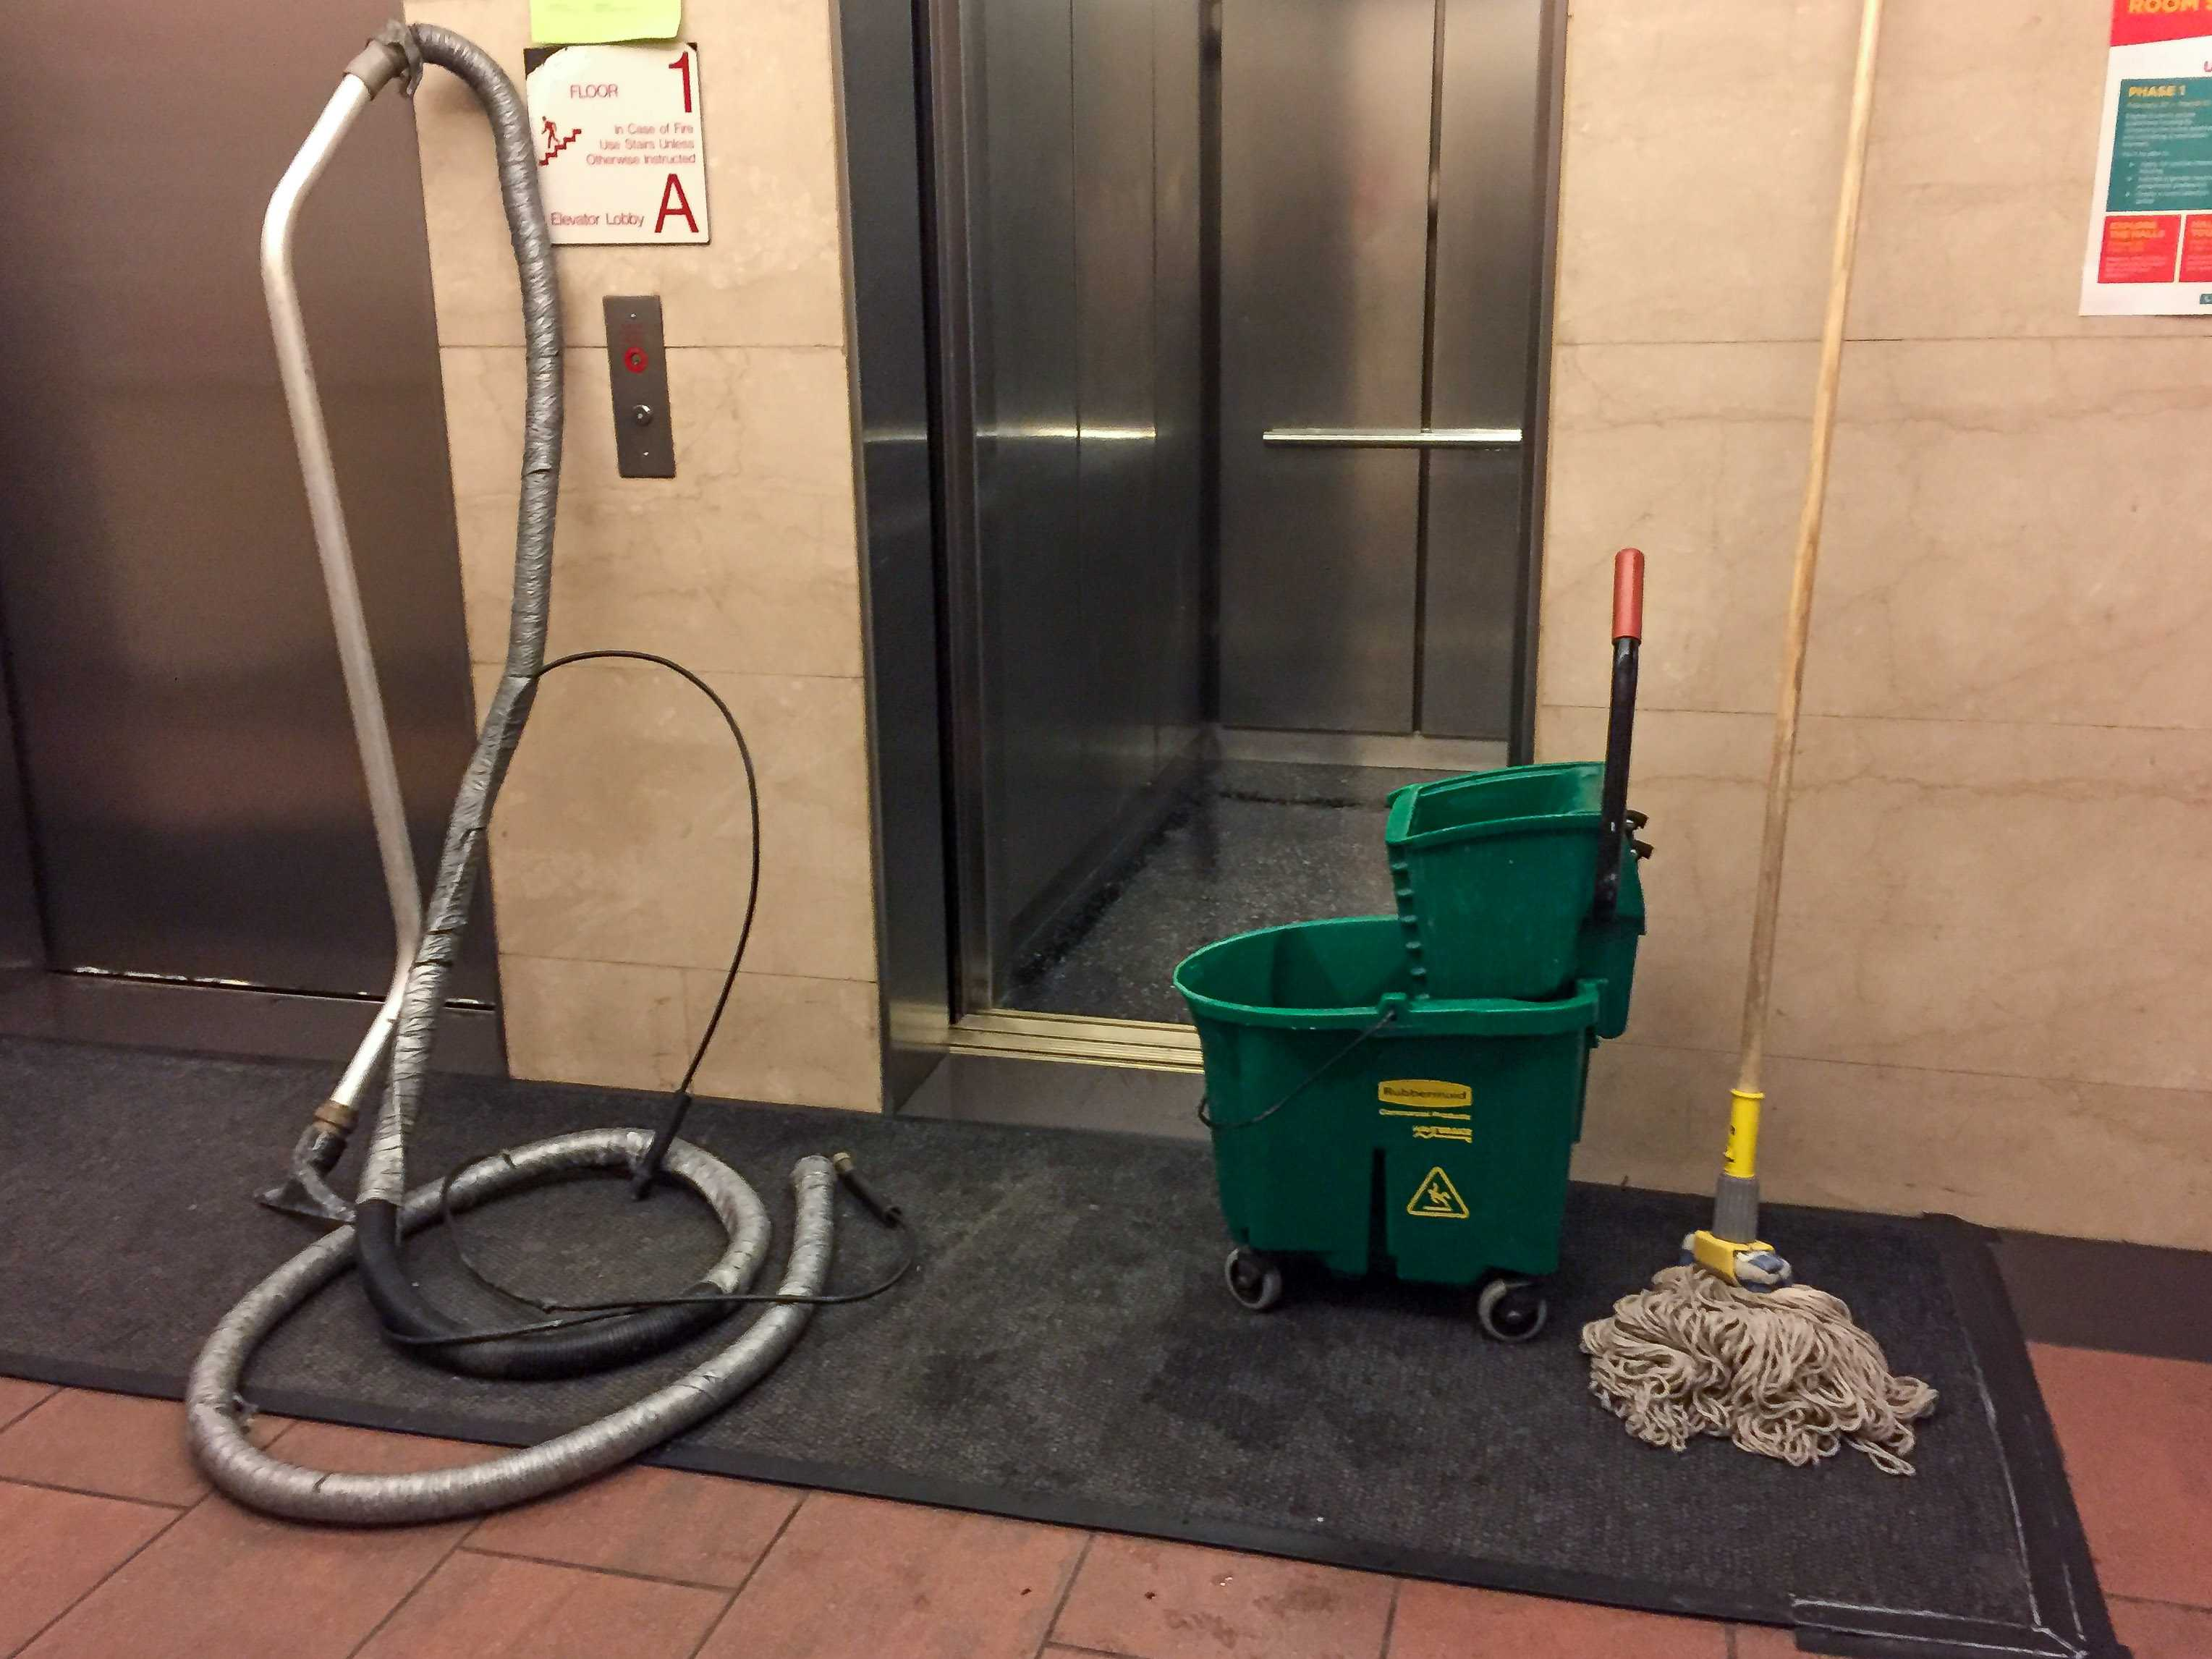 The Palladium Hall elevators being cleaned after water started leaking from the ceilings on Tuesday. The maintenance work has inconvenienced residents who have been forced to use the stairs to navigate the 16 floor building.